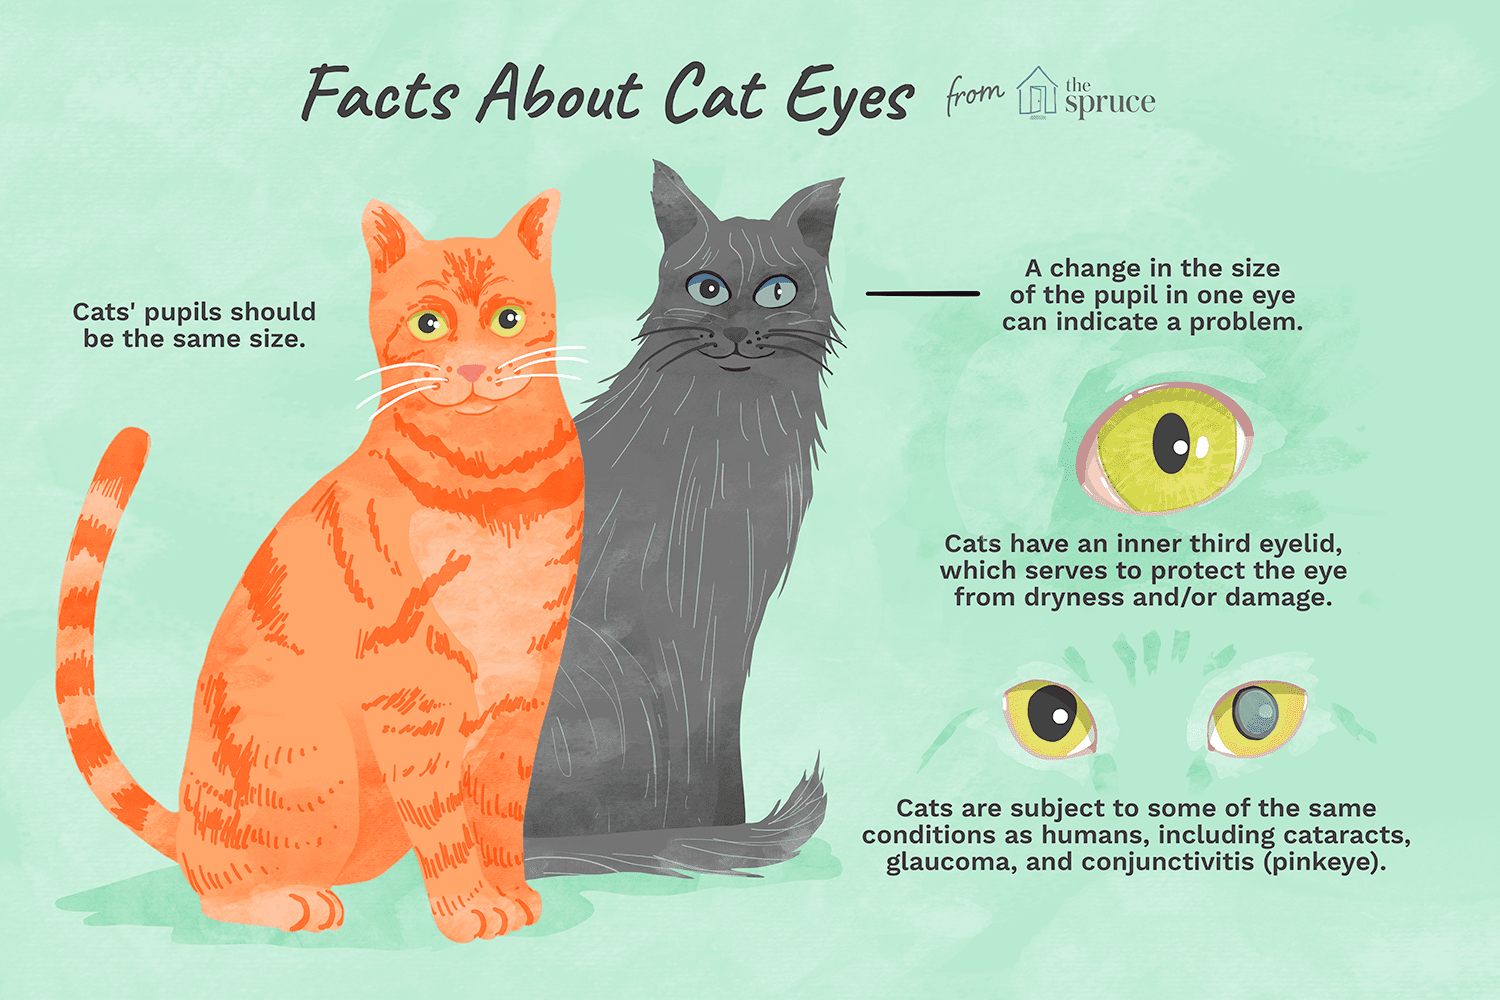 illustration of facts about cat eyes